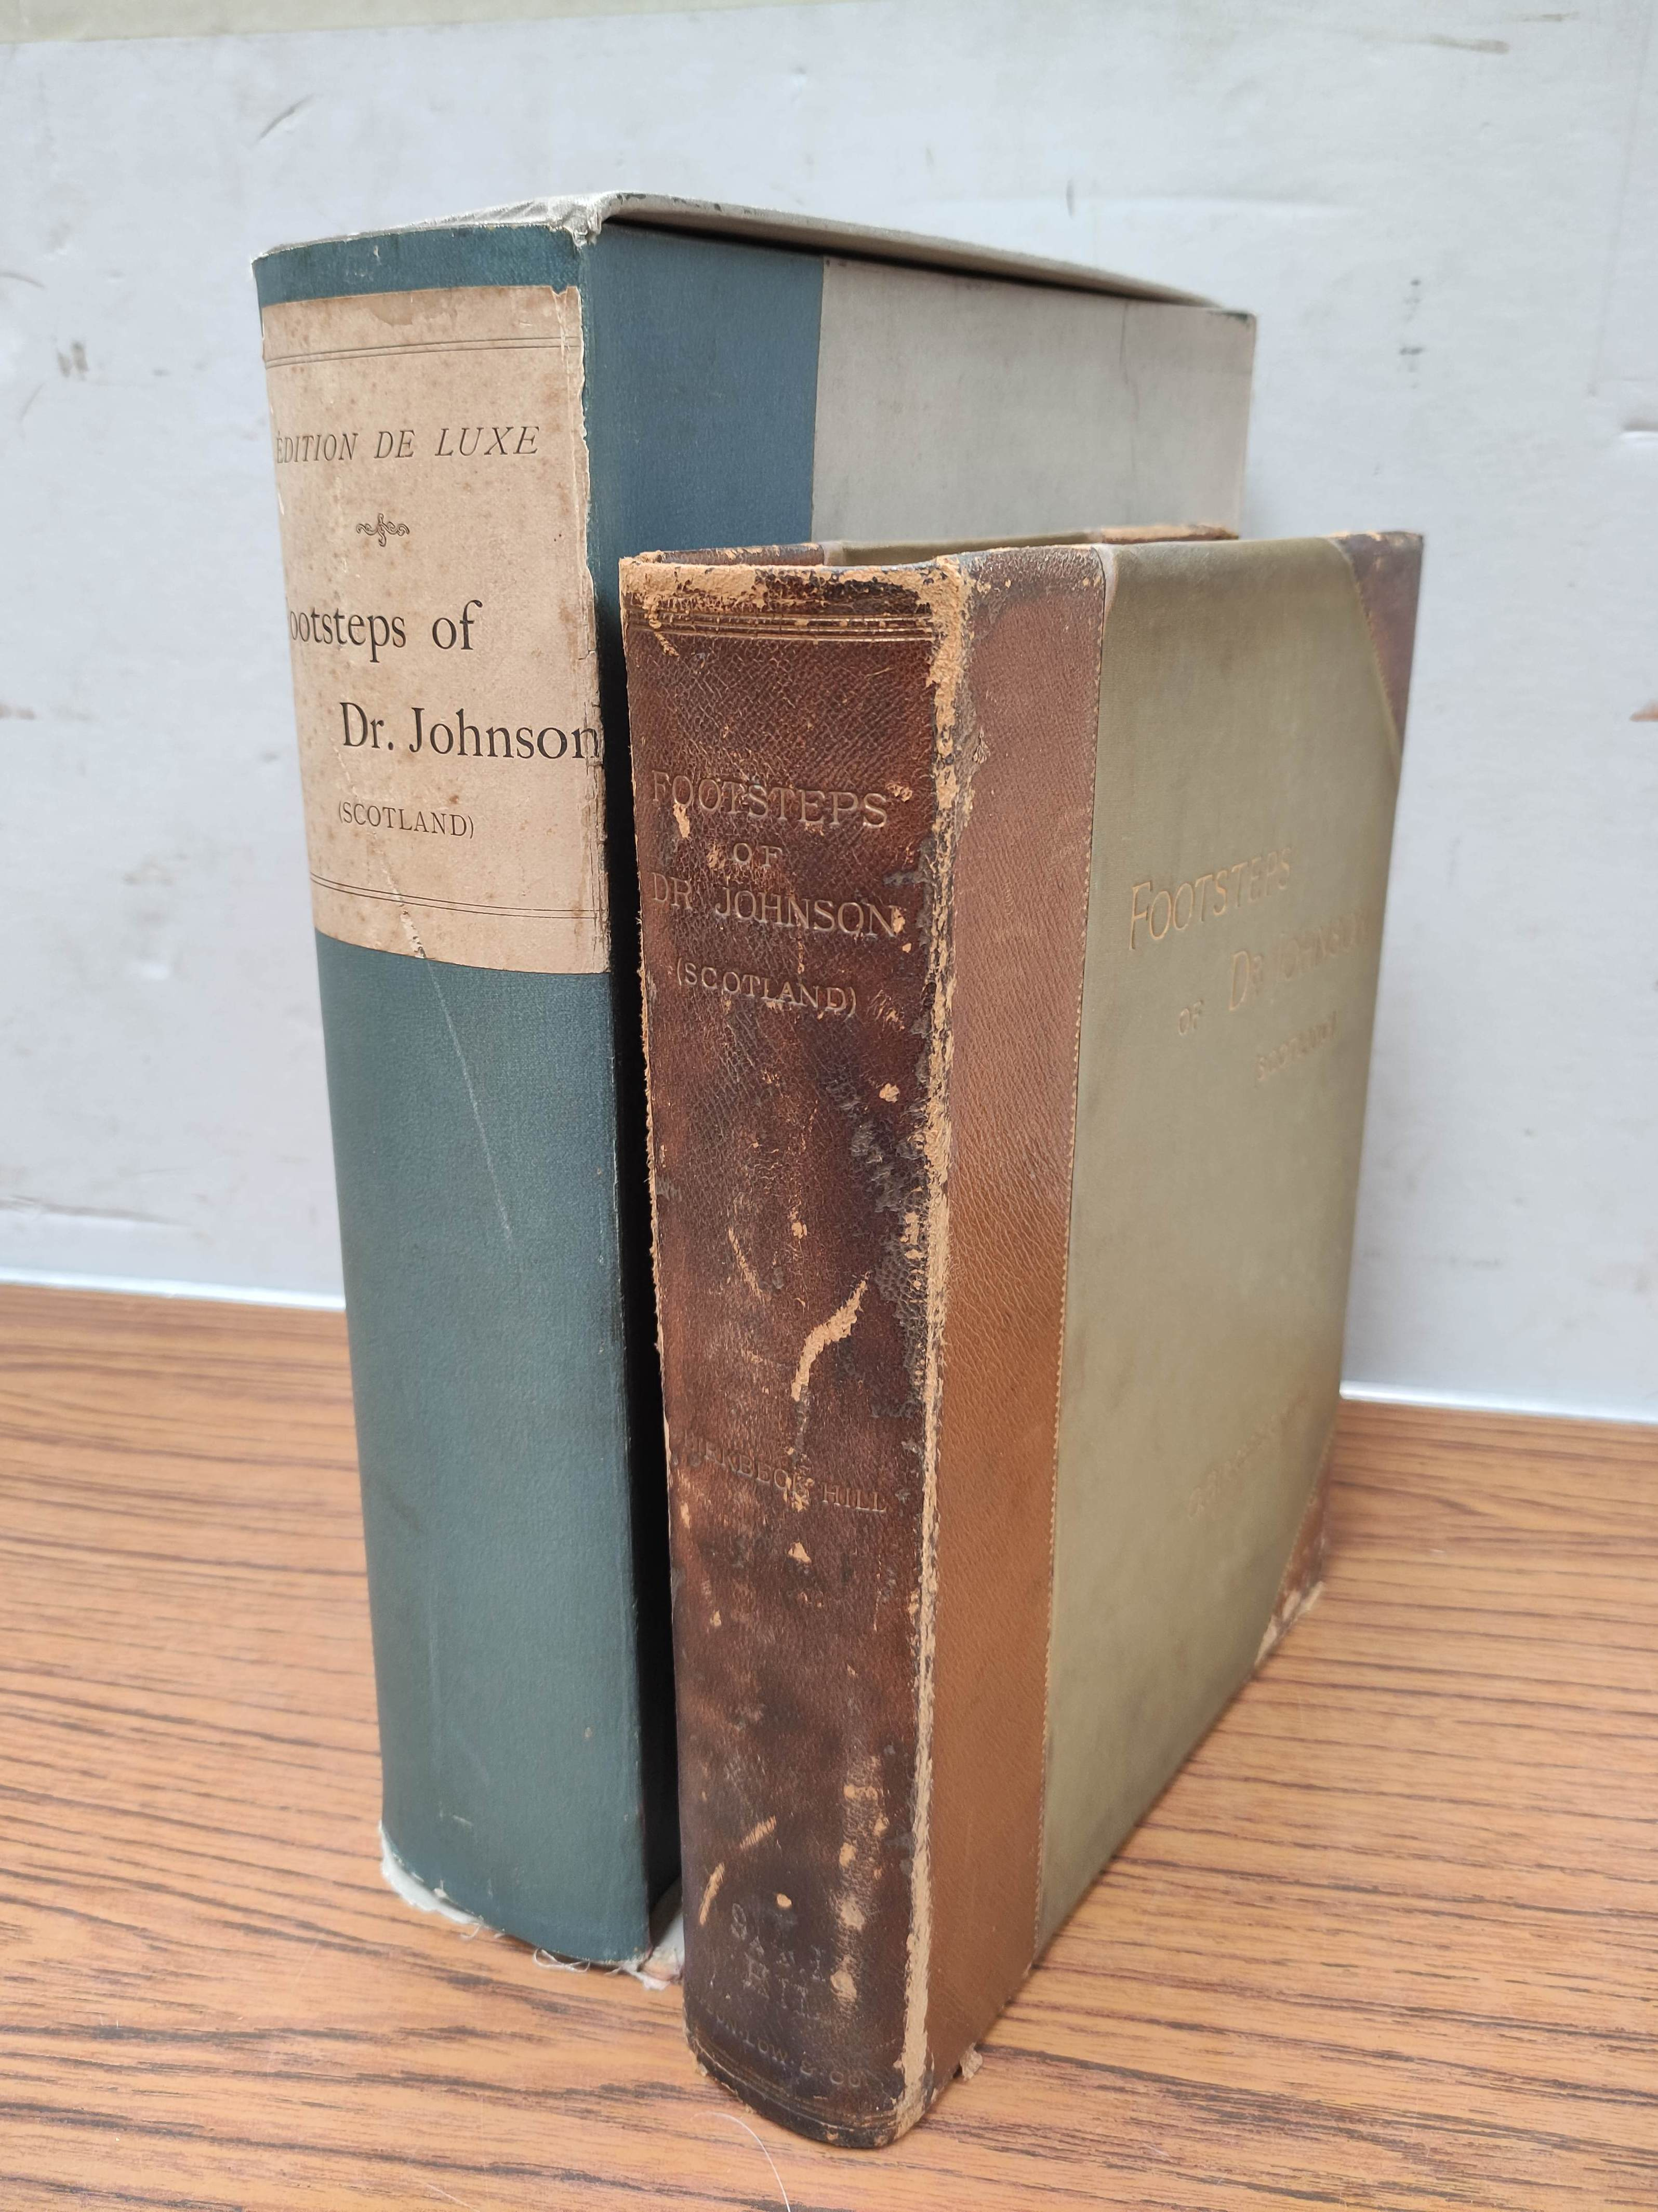 BIRKBECK HILL GEORGE.Footsteps of Dr. Johnson. Edition Deluxe. Plates. Unbound leaves in card